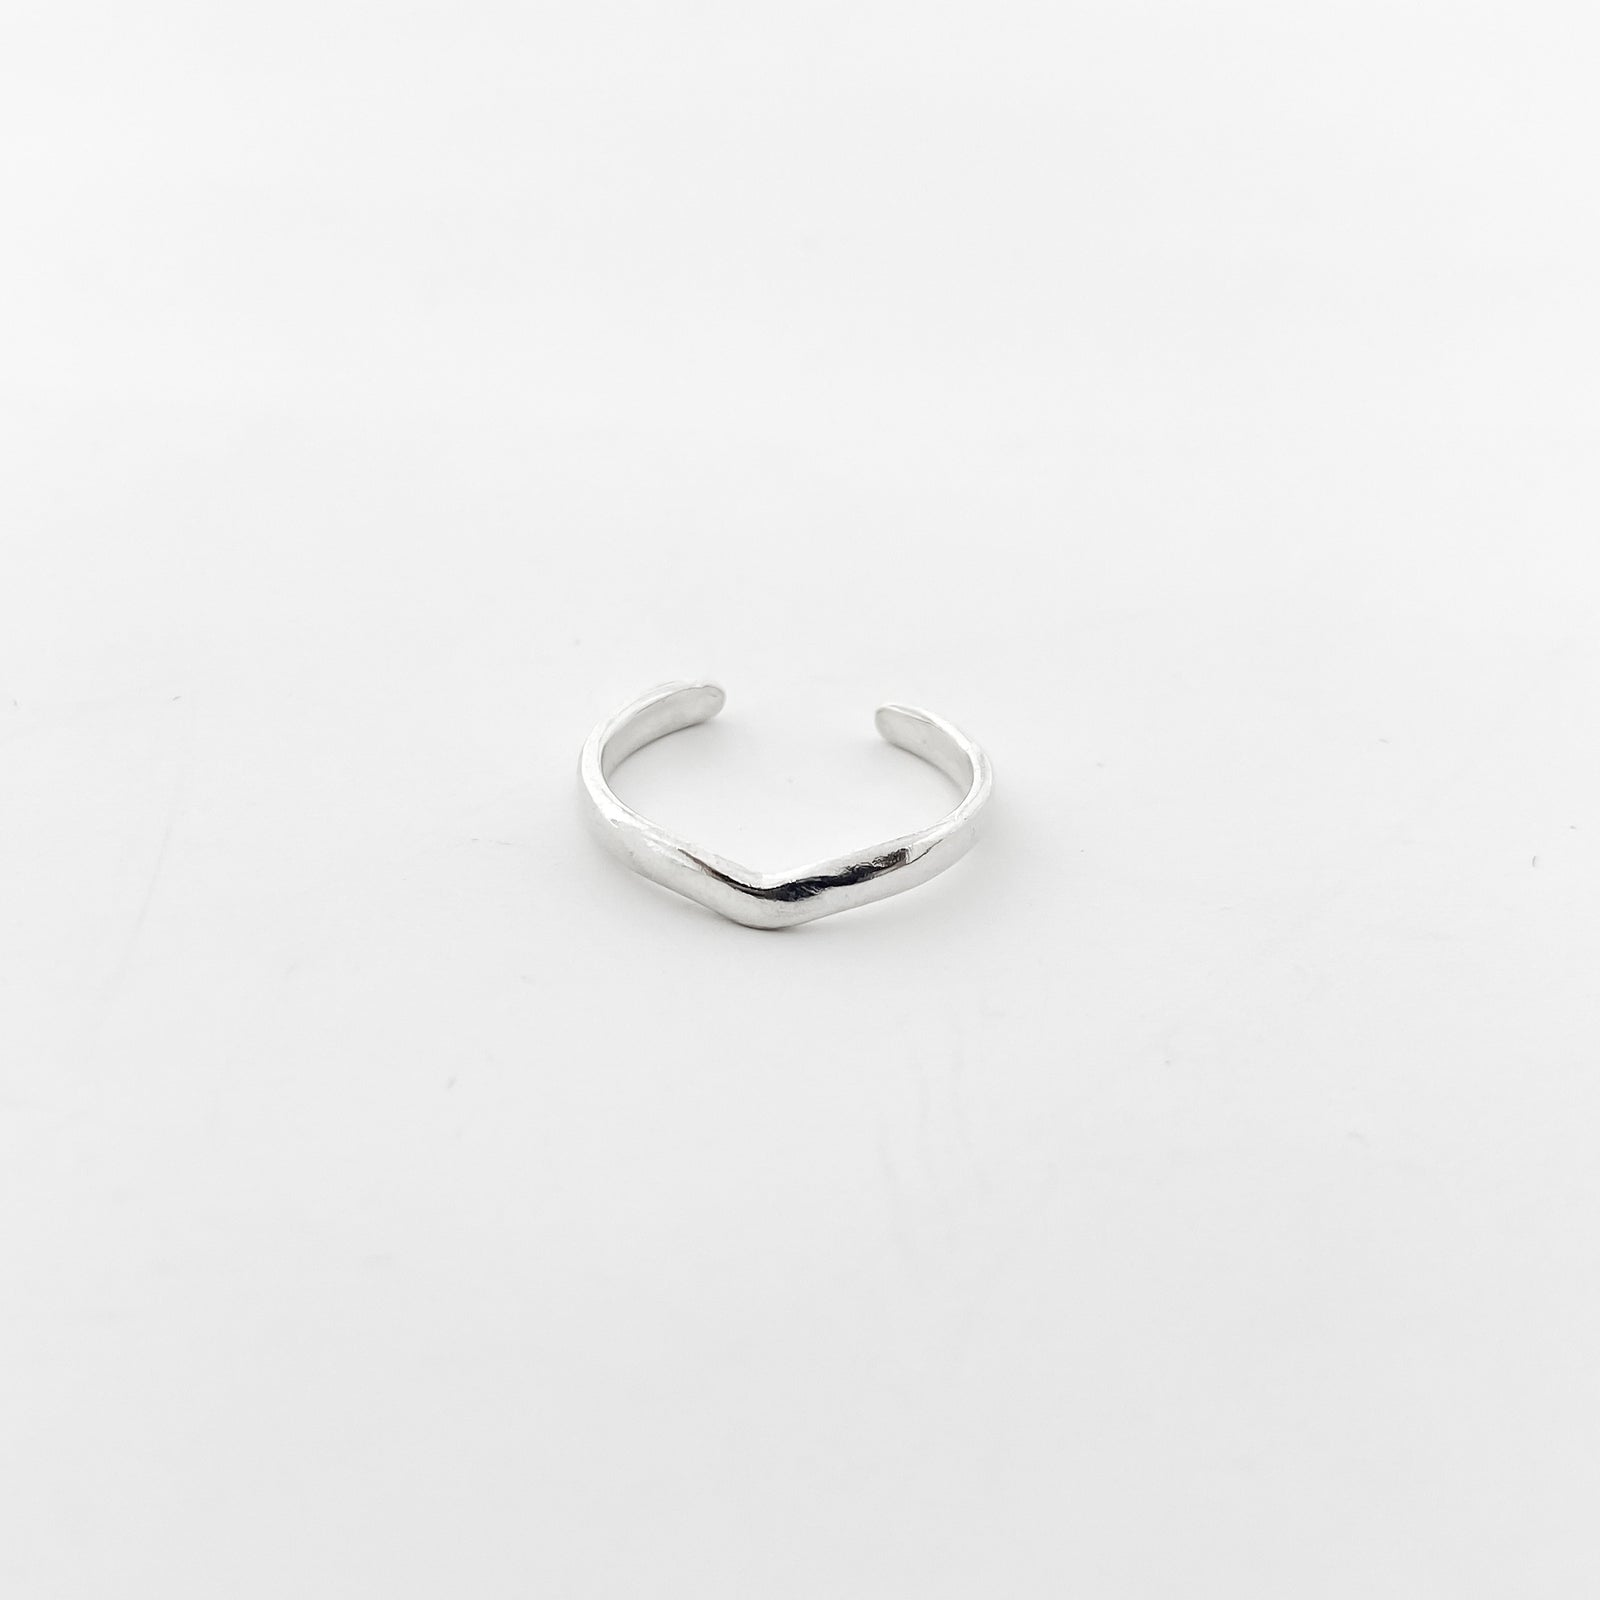 V-SHAPE TOE RING | STERLING SILVER | SIZE OPTIONS